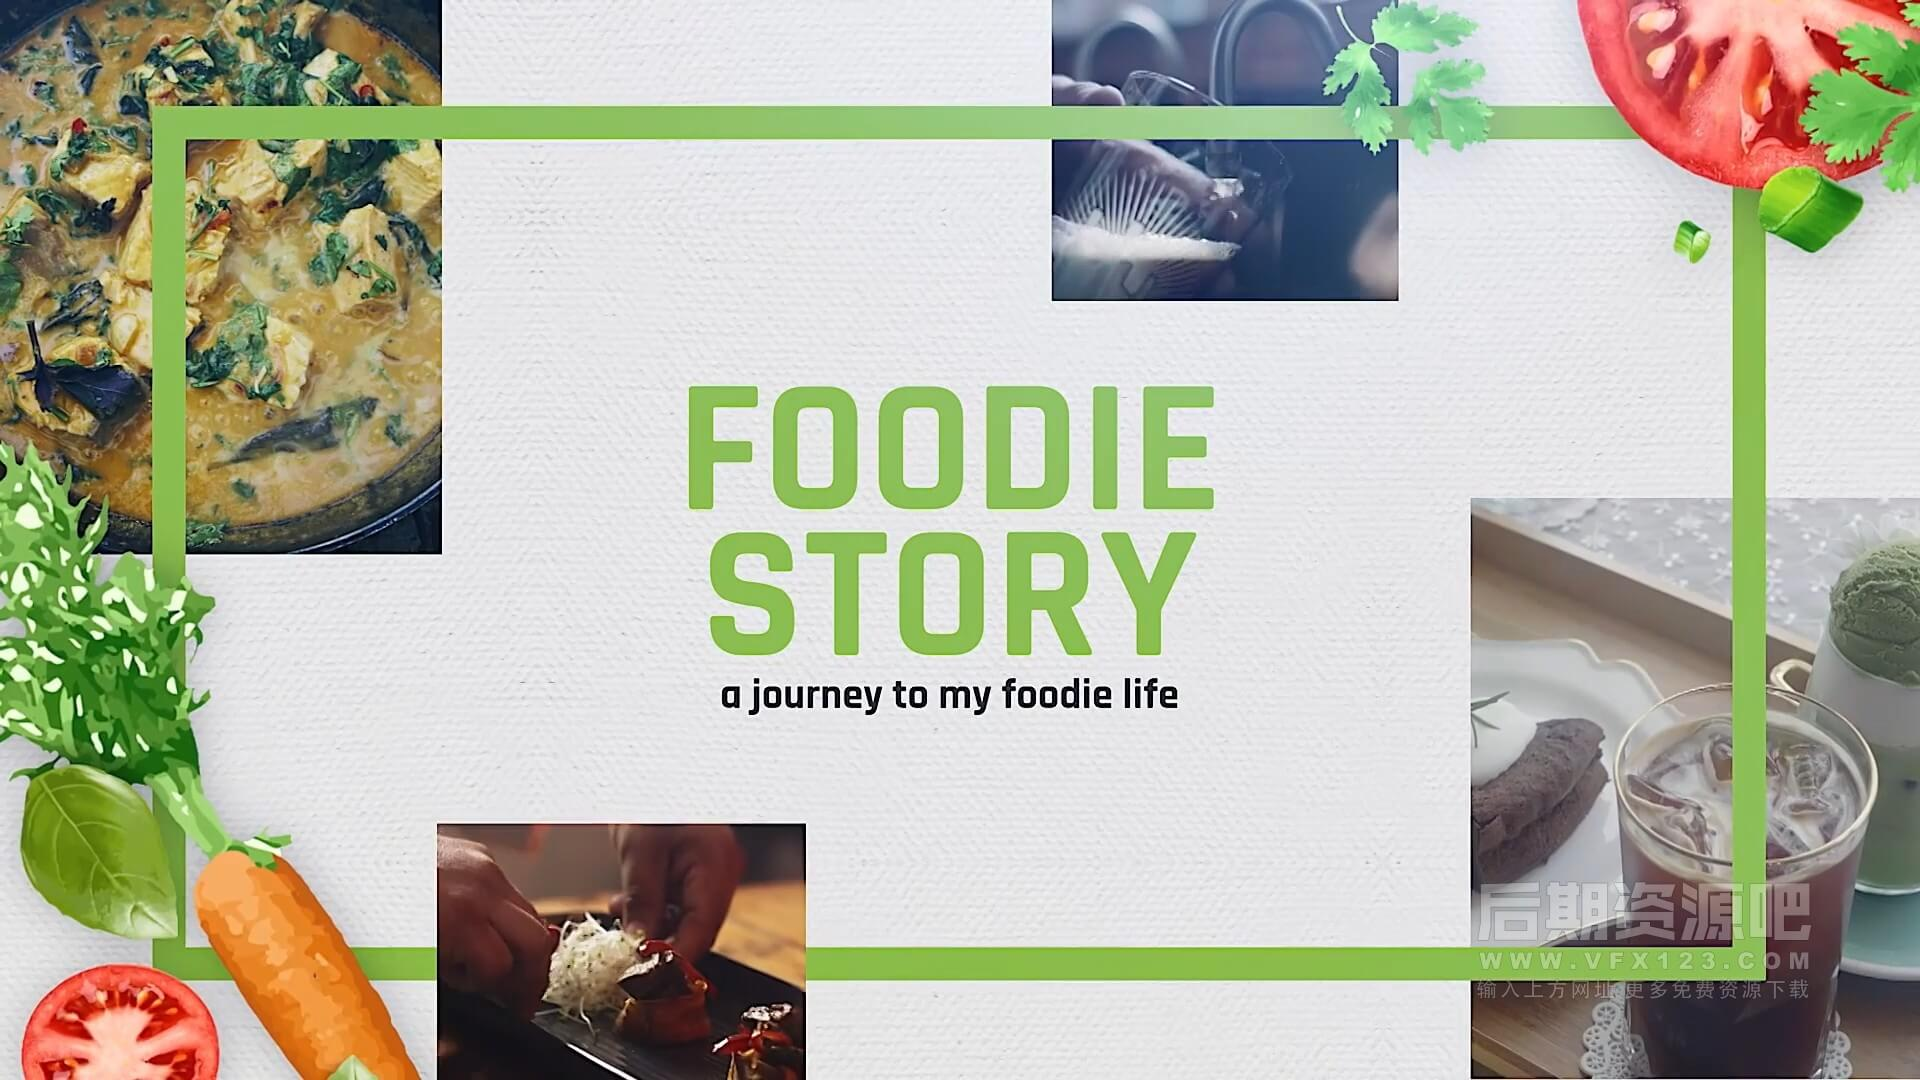 fcpx主题模板 14个美食推广图文视频展示分镜 可自由组合 Foodie Story